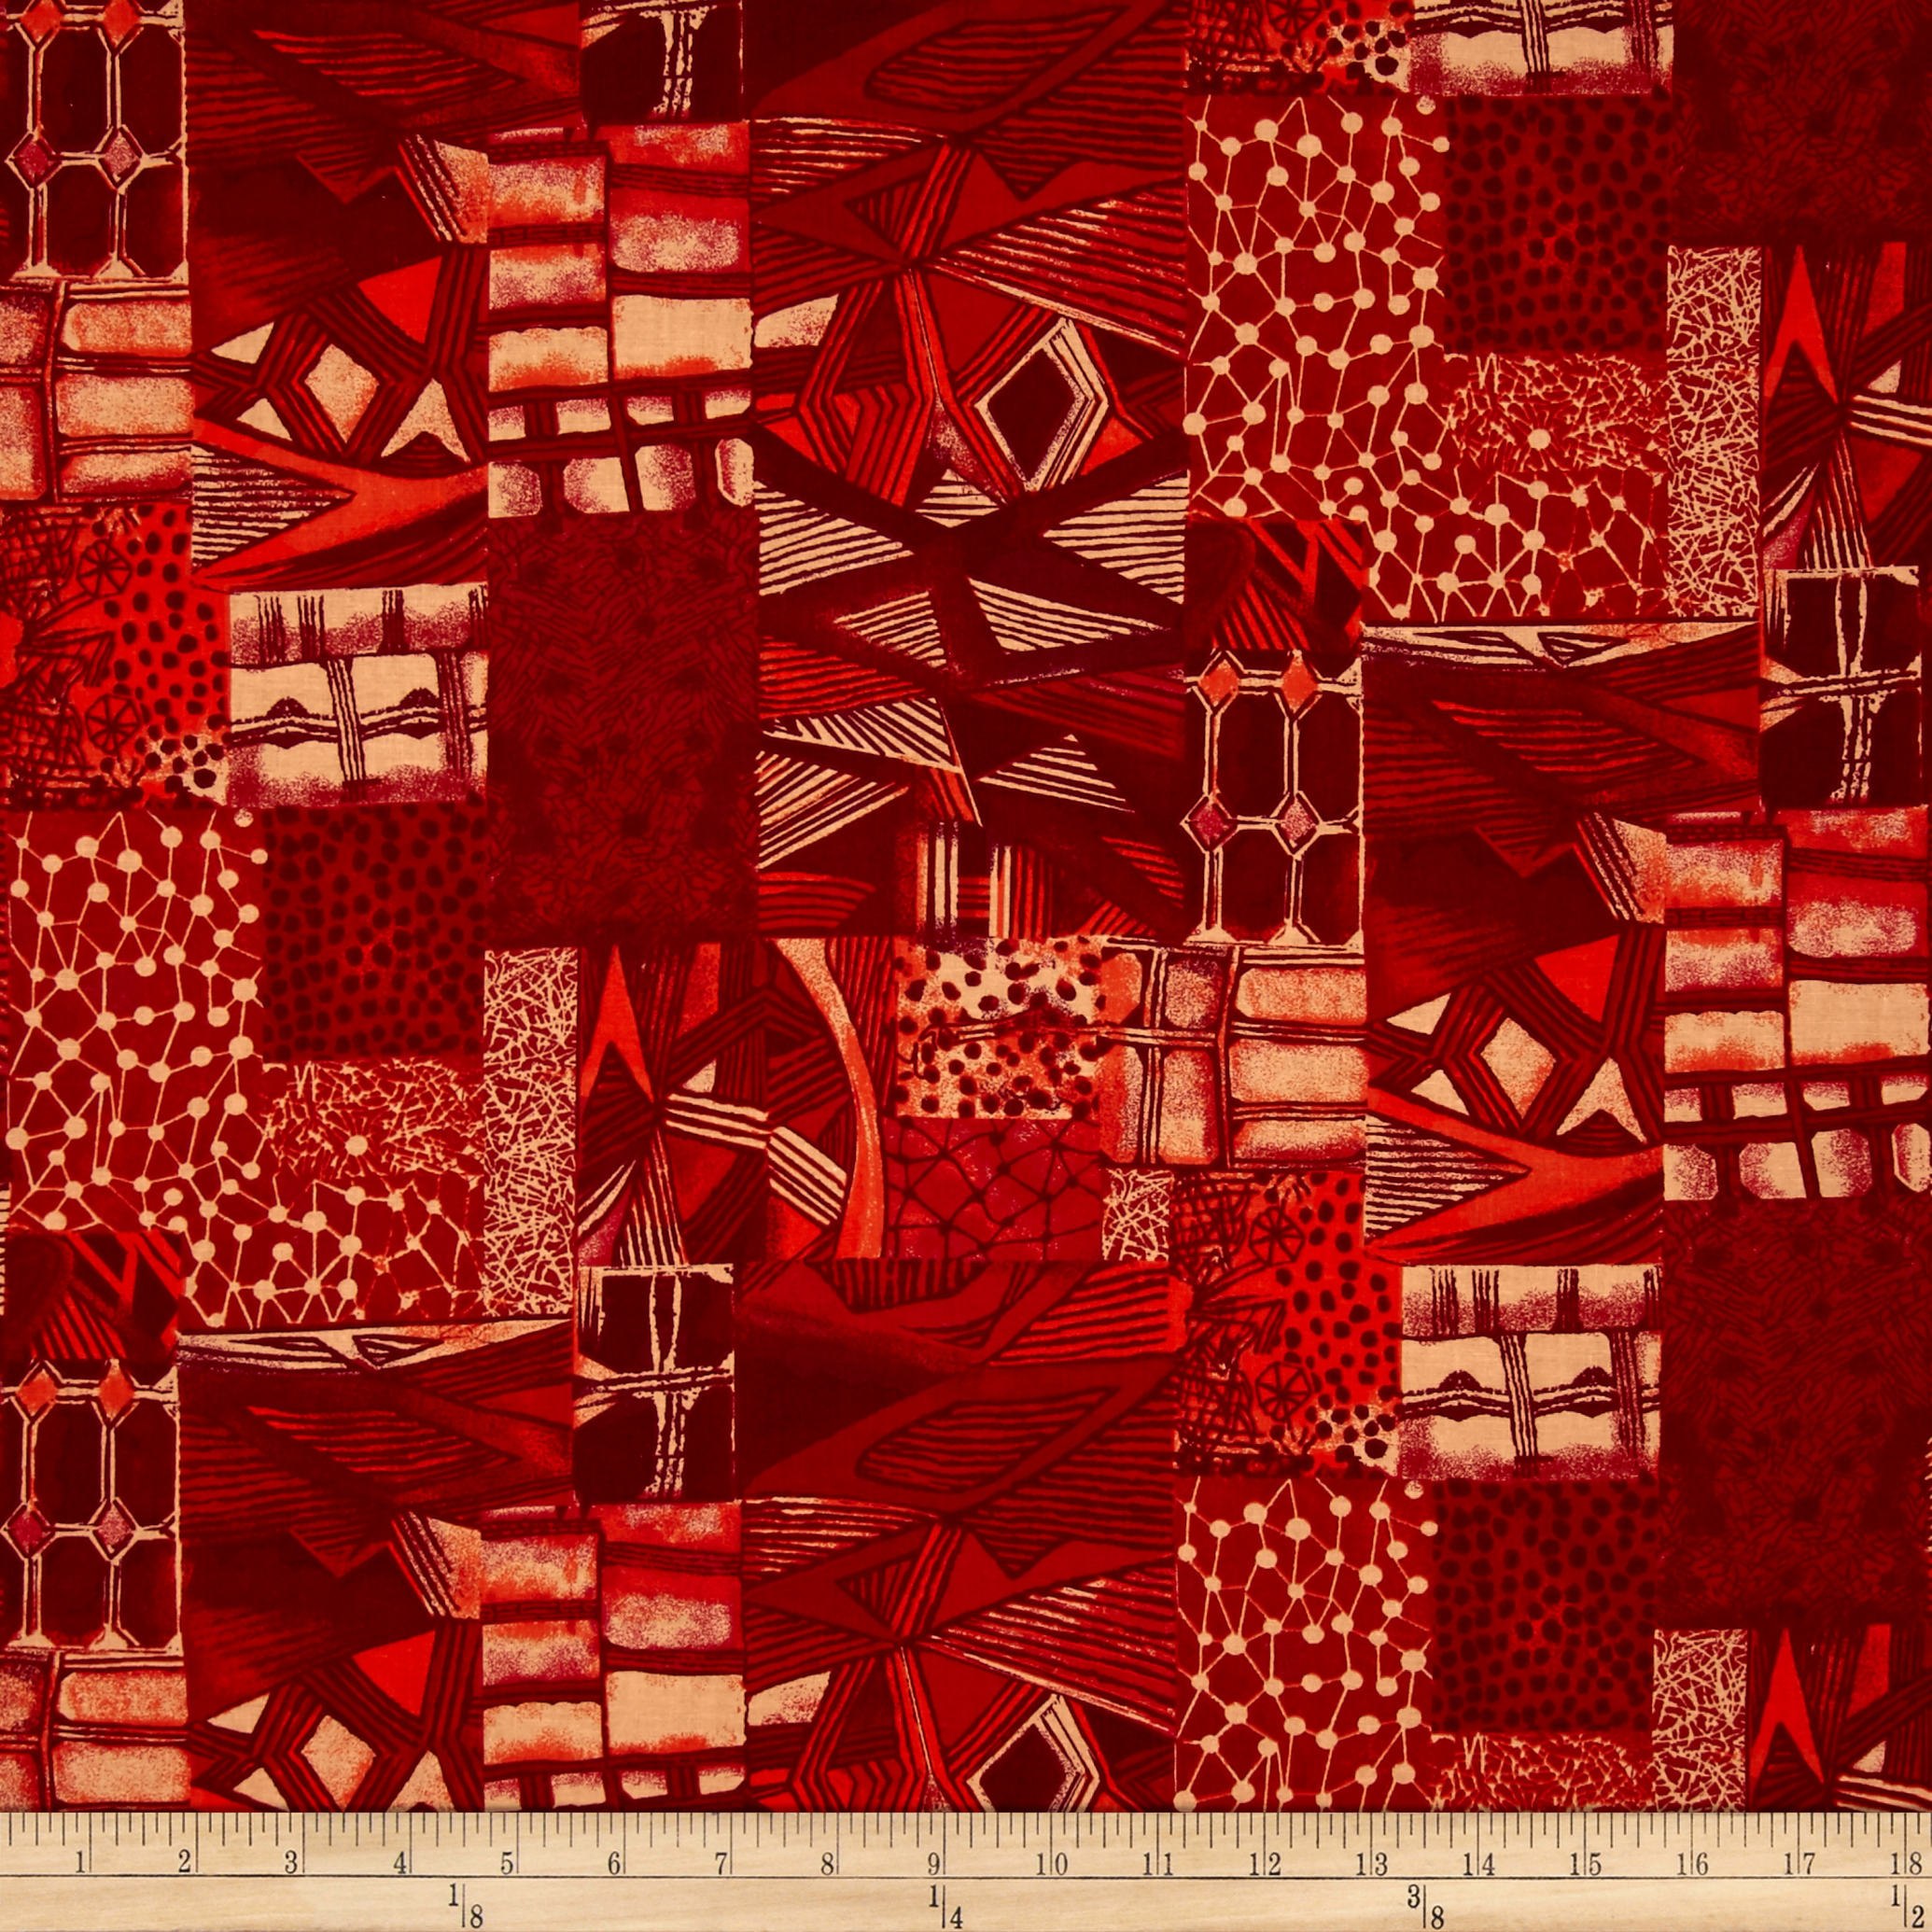 Jakarta Abstract Red Fabric by Santee in USA